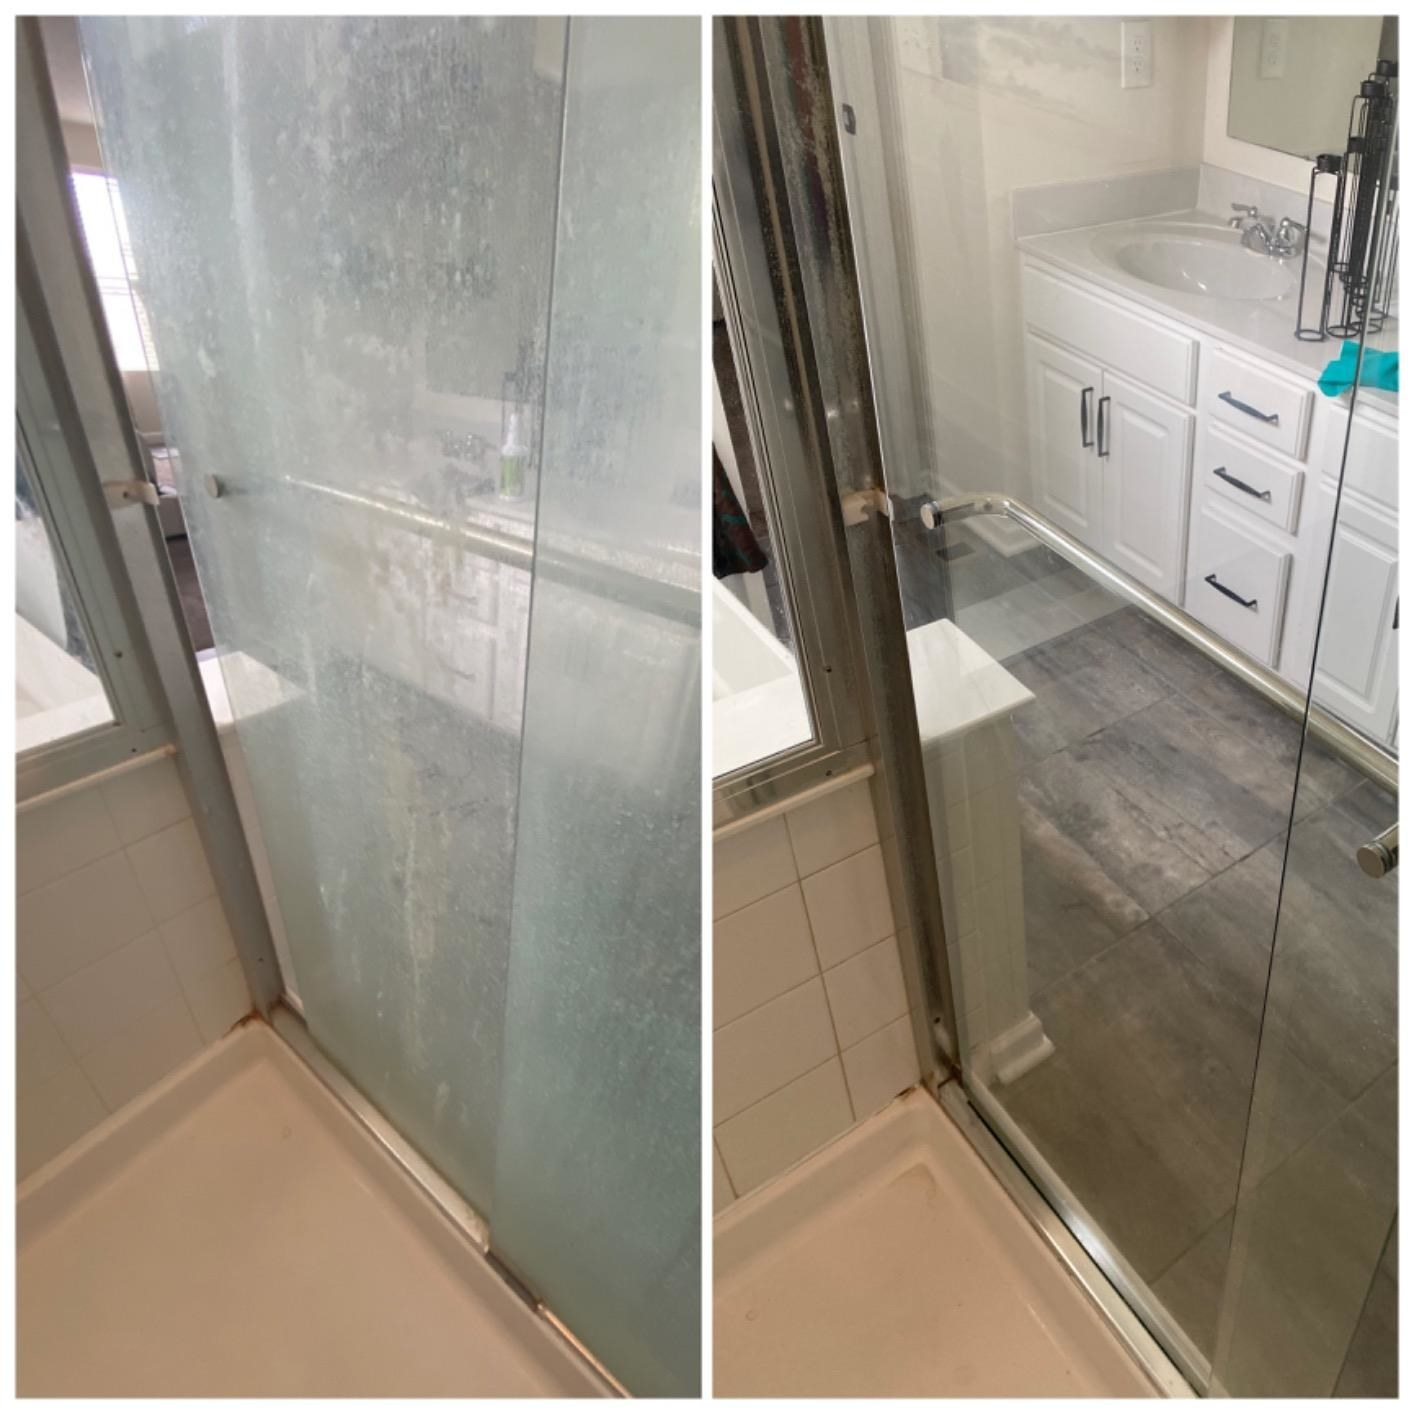 A reviewer's before and after showing how it removed the water stains from a shower door making it clear again